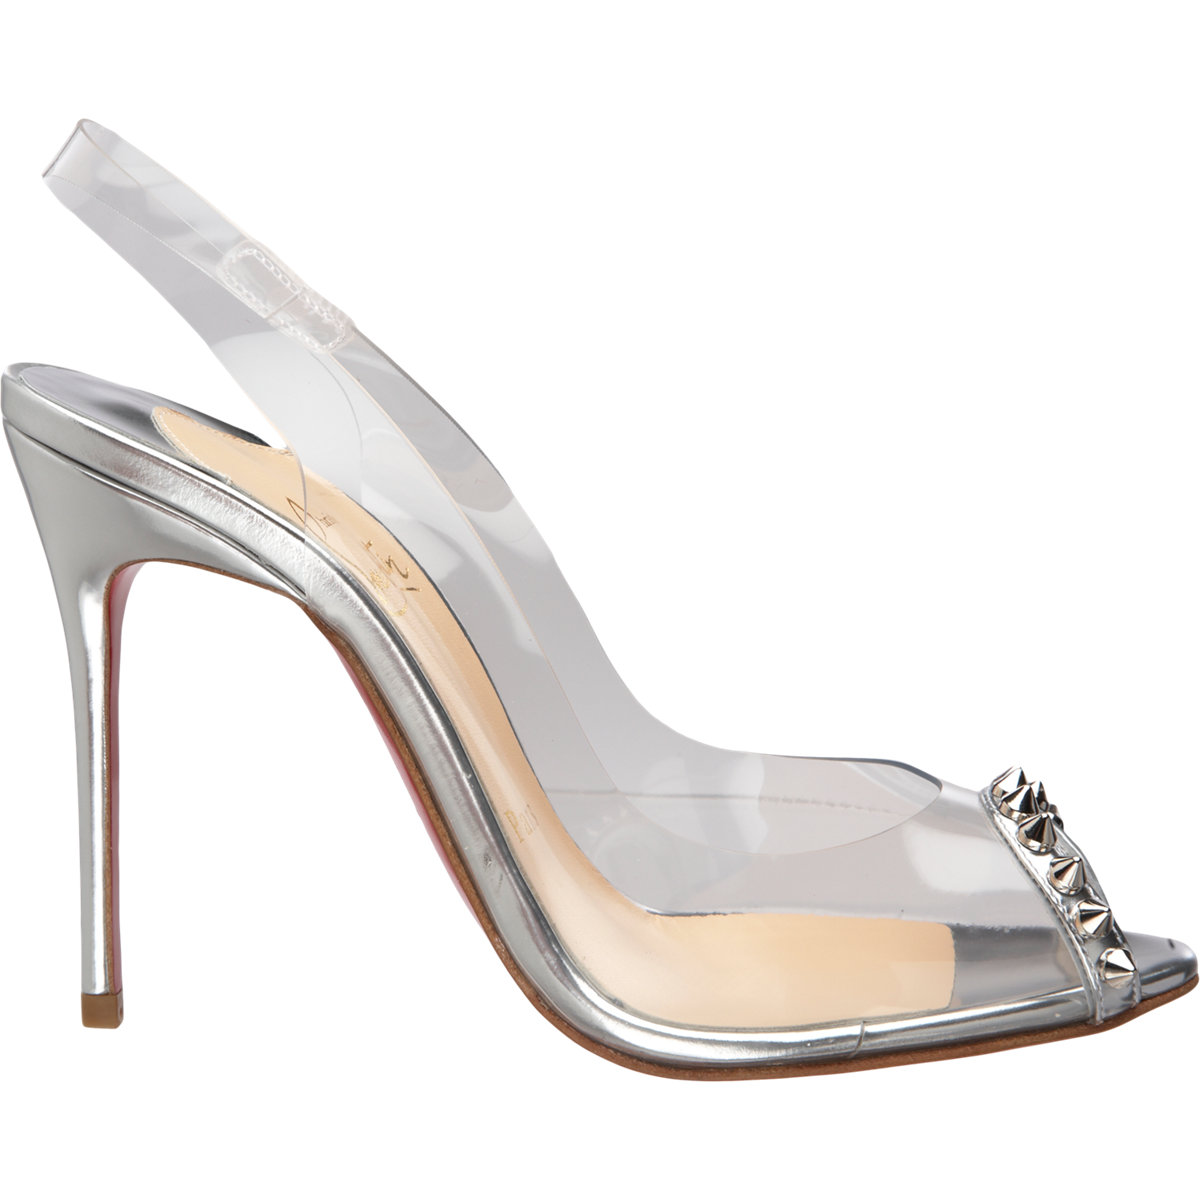 louboutins sneakers - christian louboutin PVC and leather slide sandals Silver-tone ...